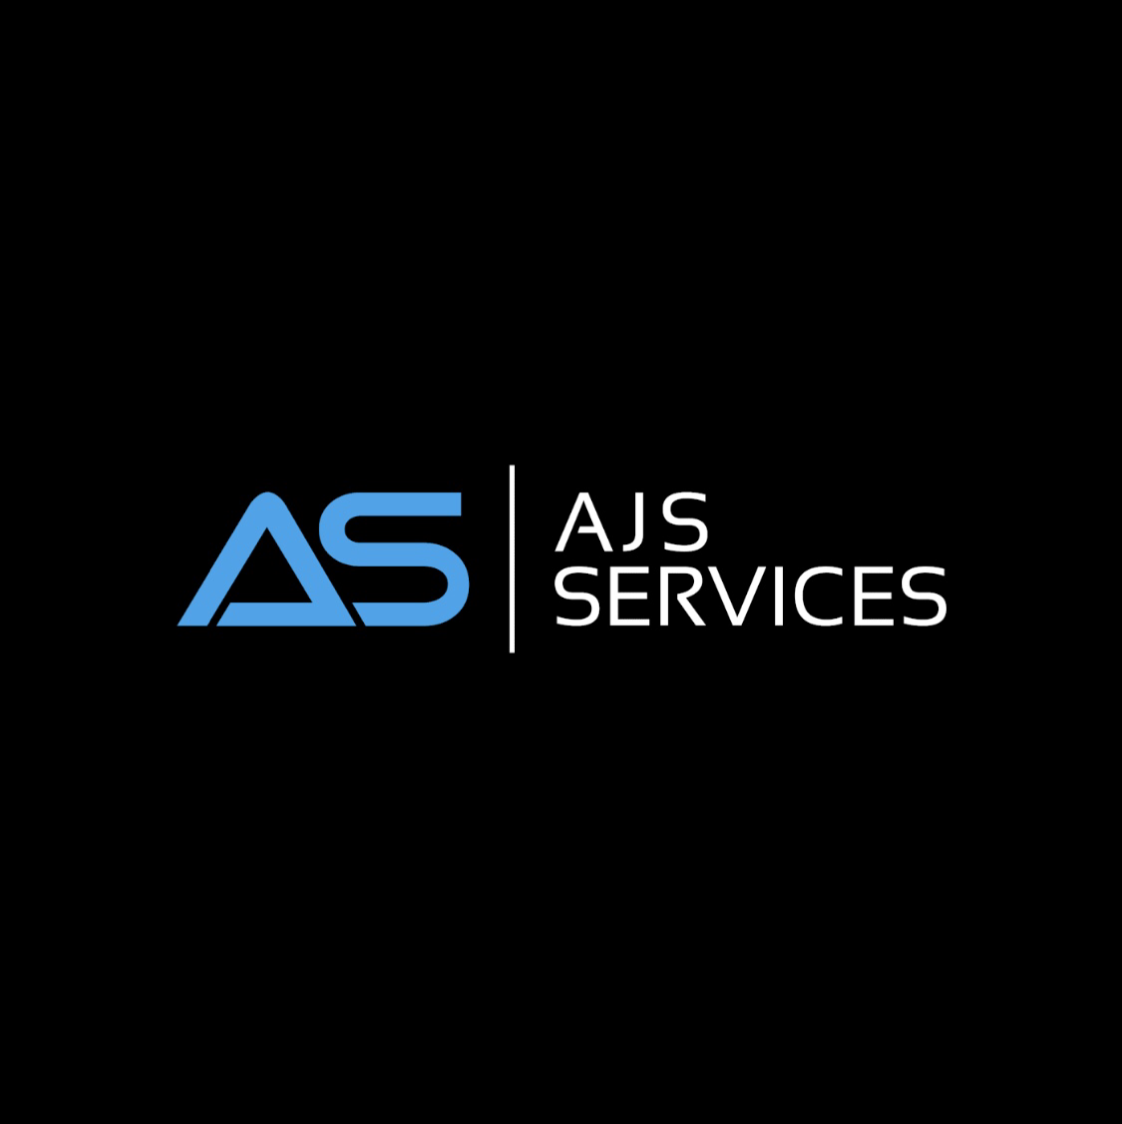 Ajs Services